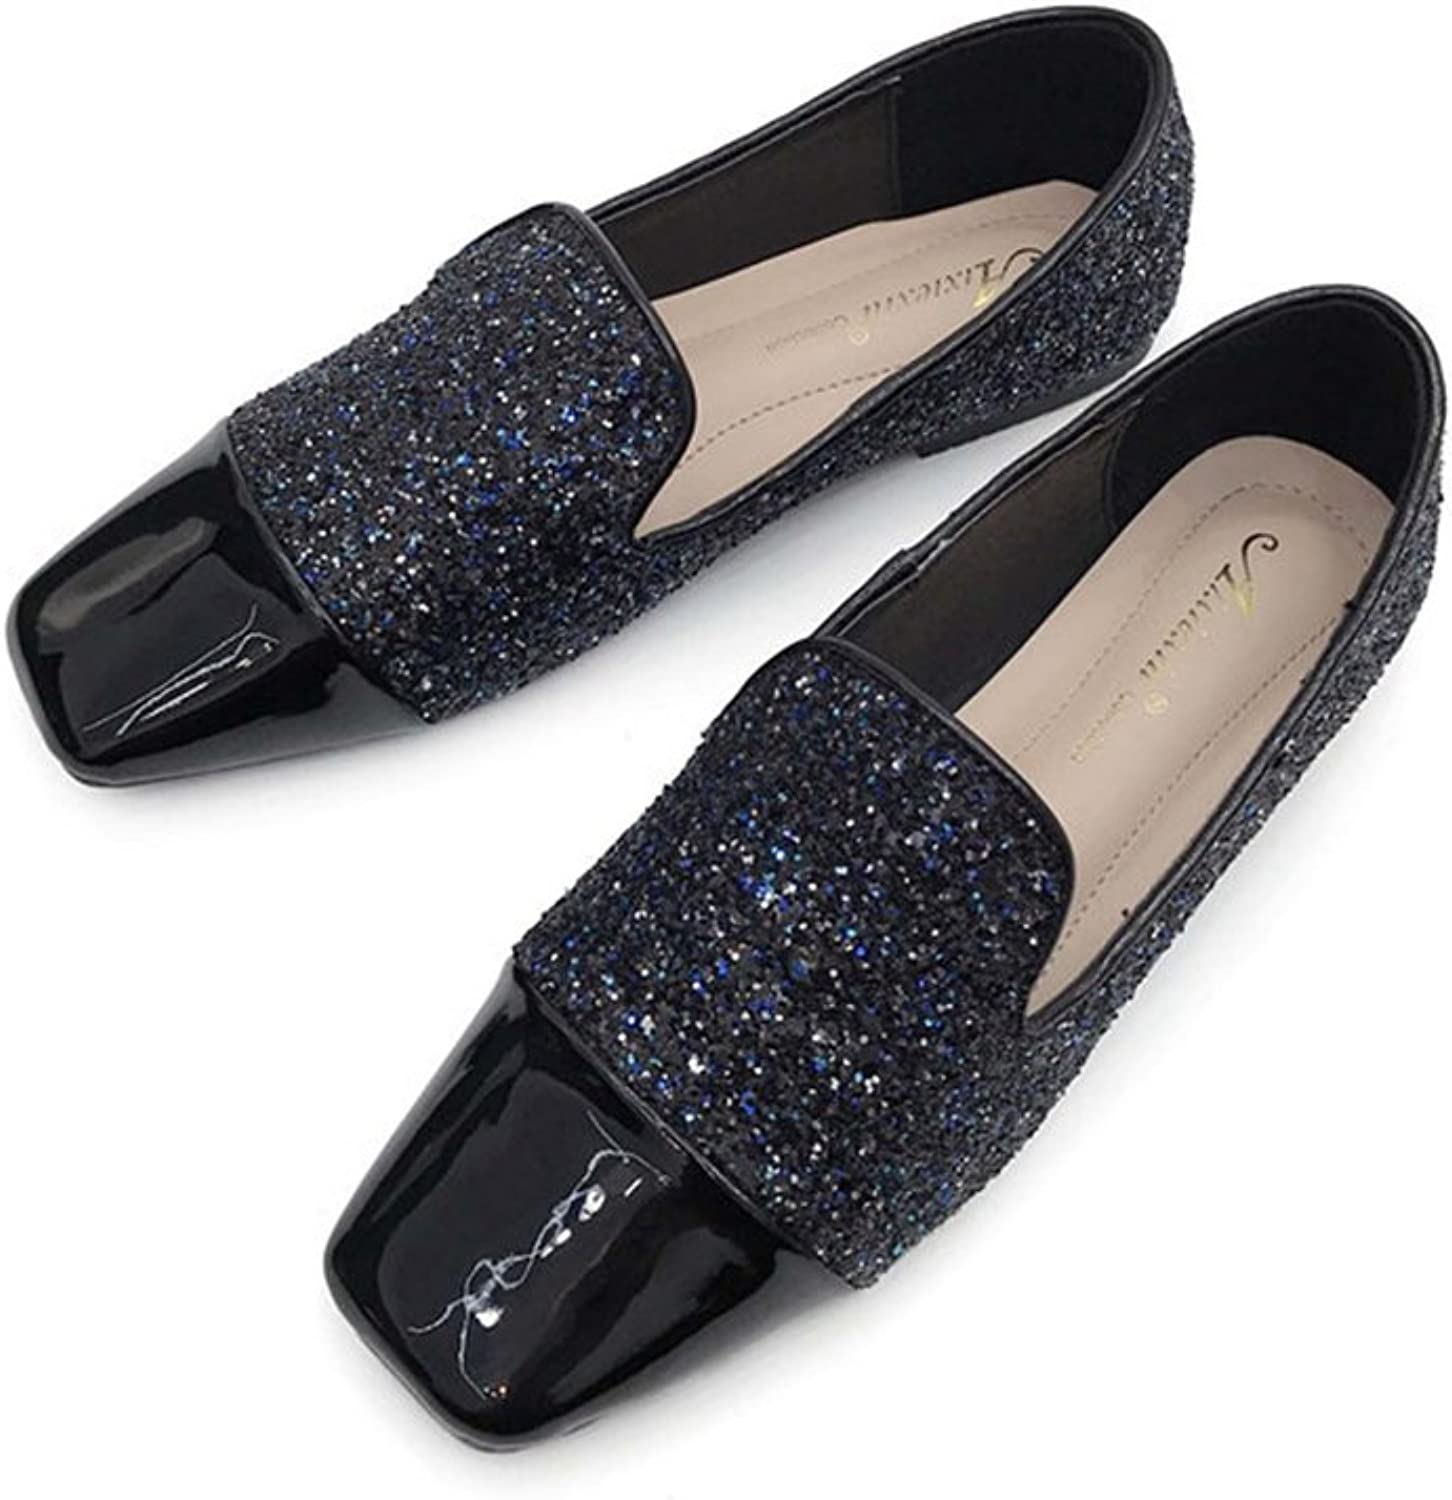 T-JULY Loafers shoes for Women - Sequins Lightweight Slip On Low-Heel Square Toe Casual Penny Flat